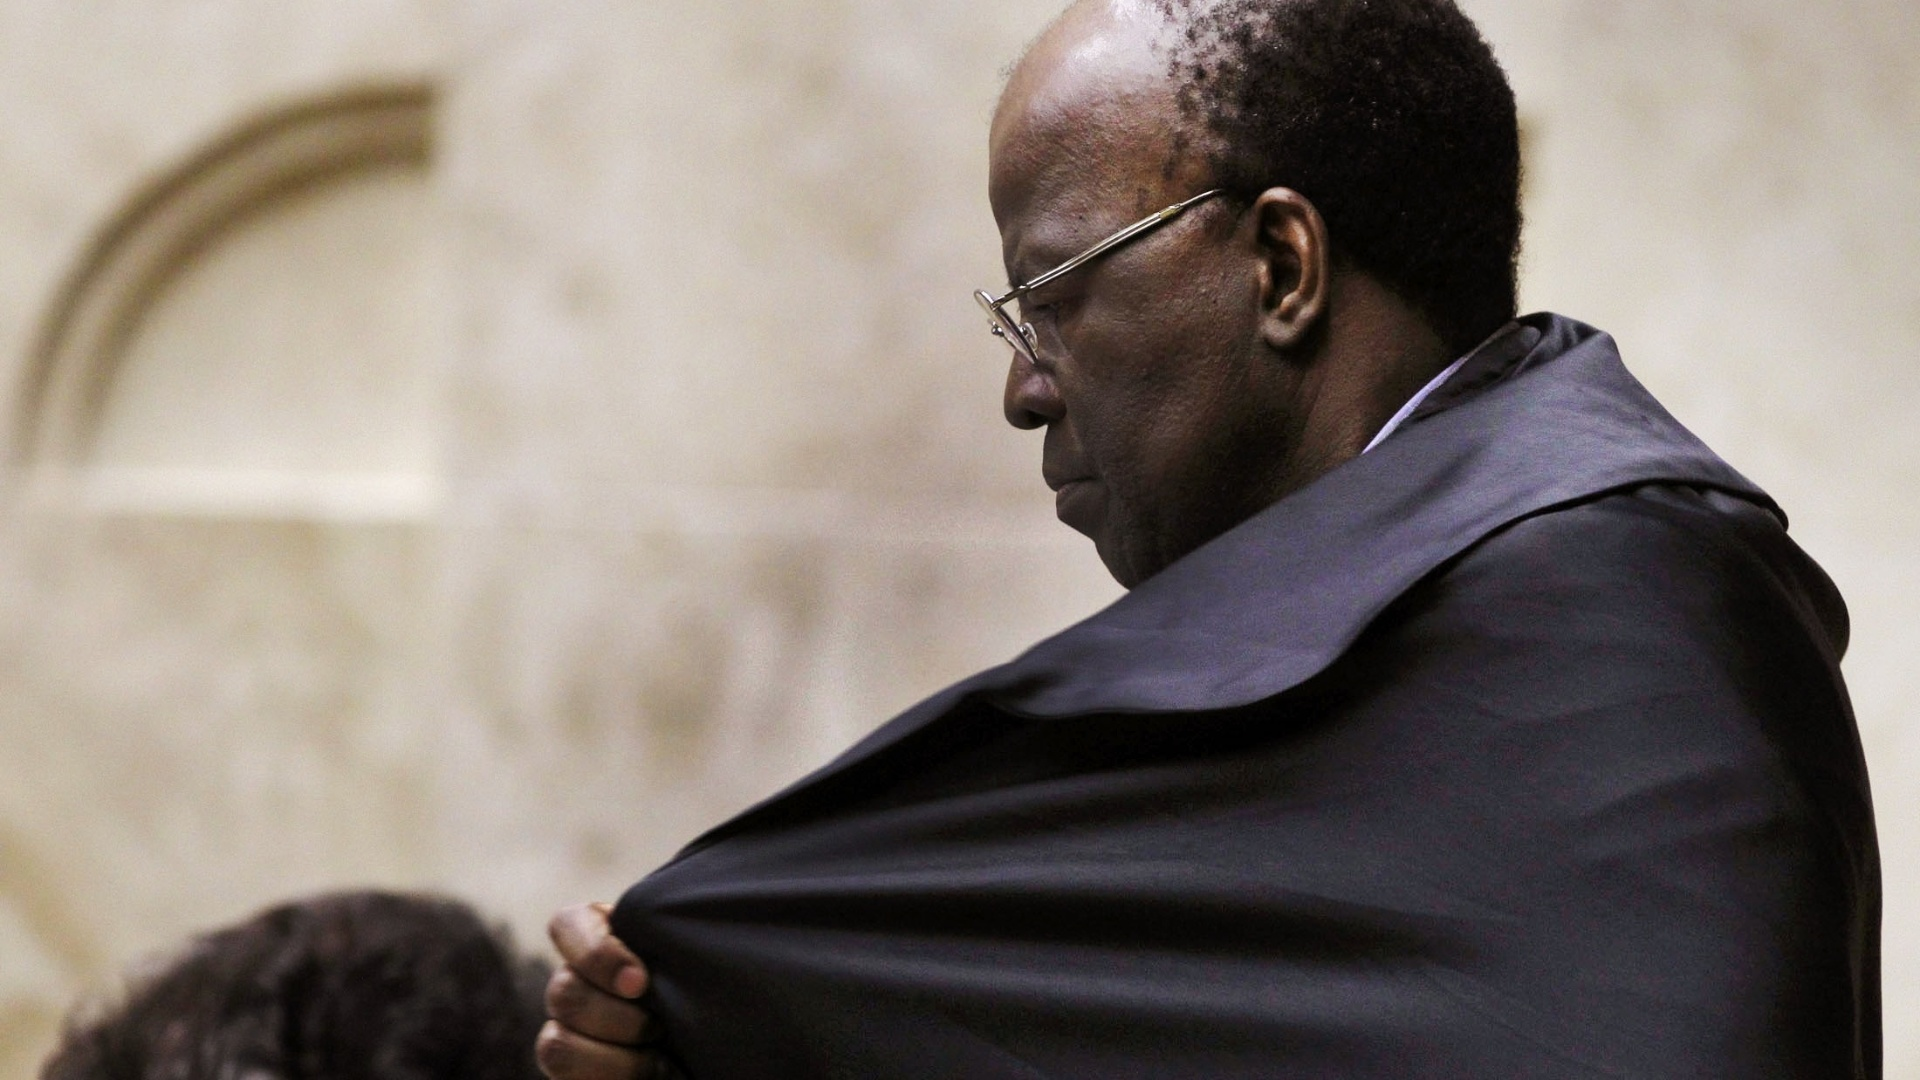 9.out.2012 - Ministro Joaquim Barbosa acompanha votos de ministros Dias Toffoli e Marco Aurlio Mello no captulo referente  participao no esquema de corrupo ativa no processo do mensalo